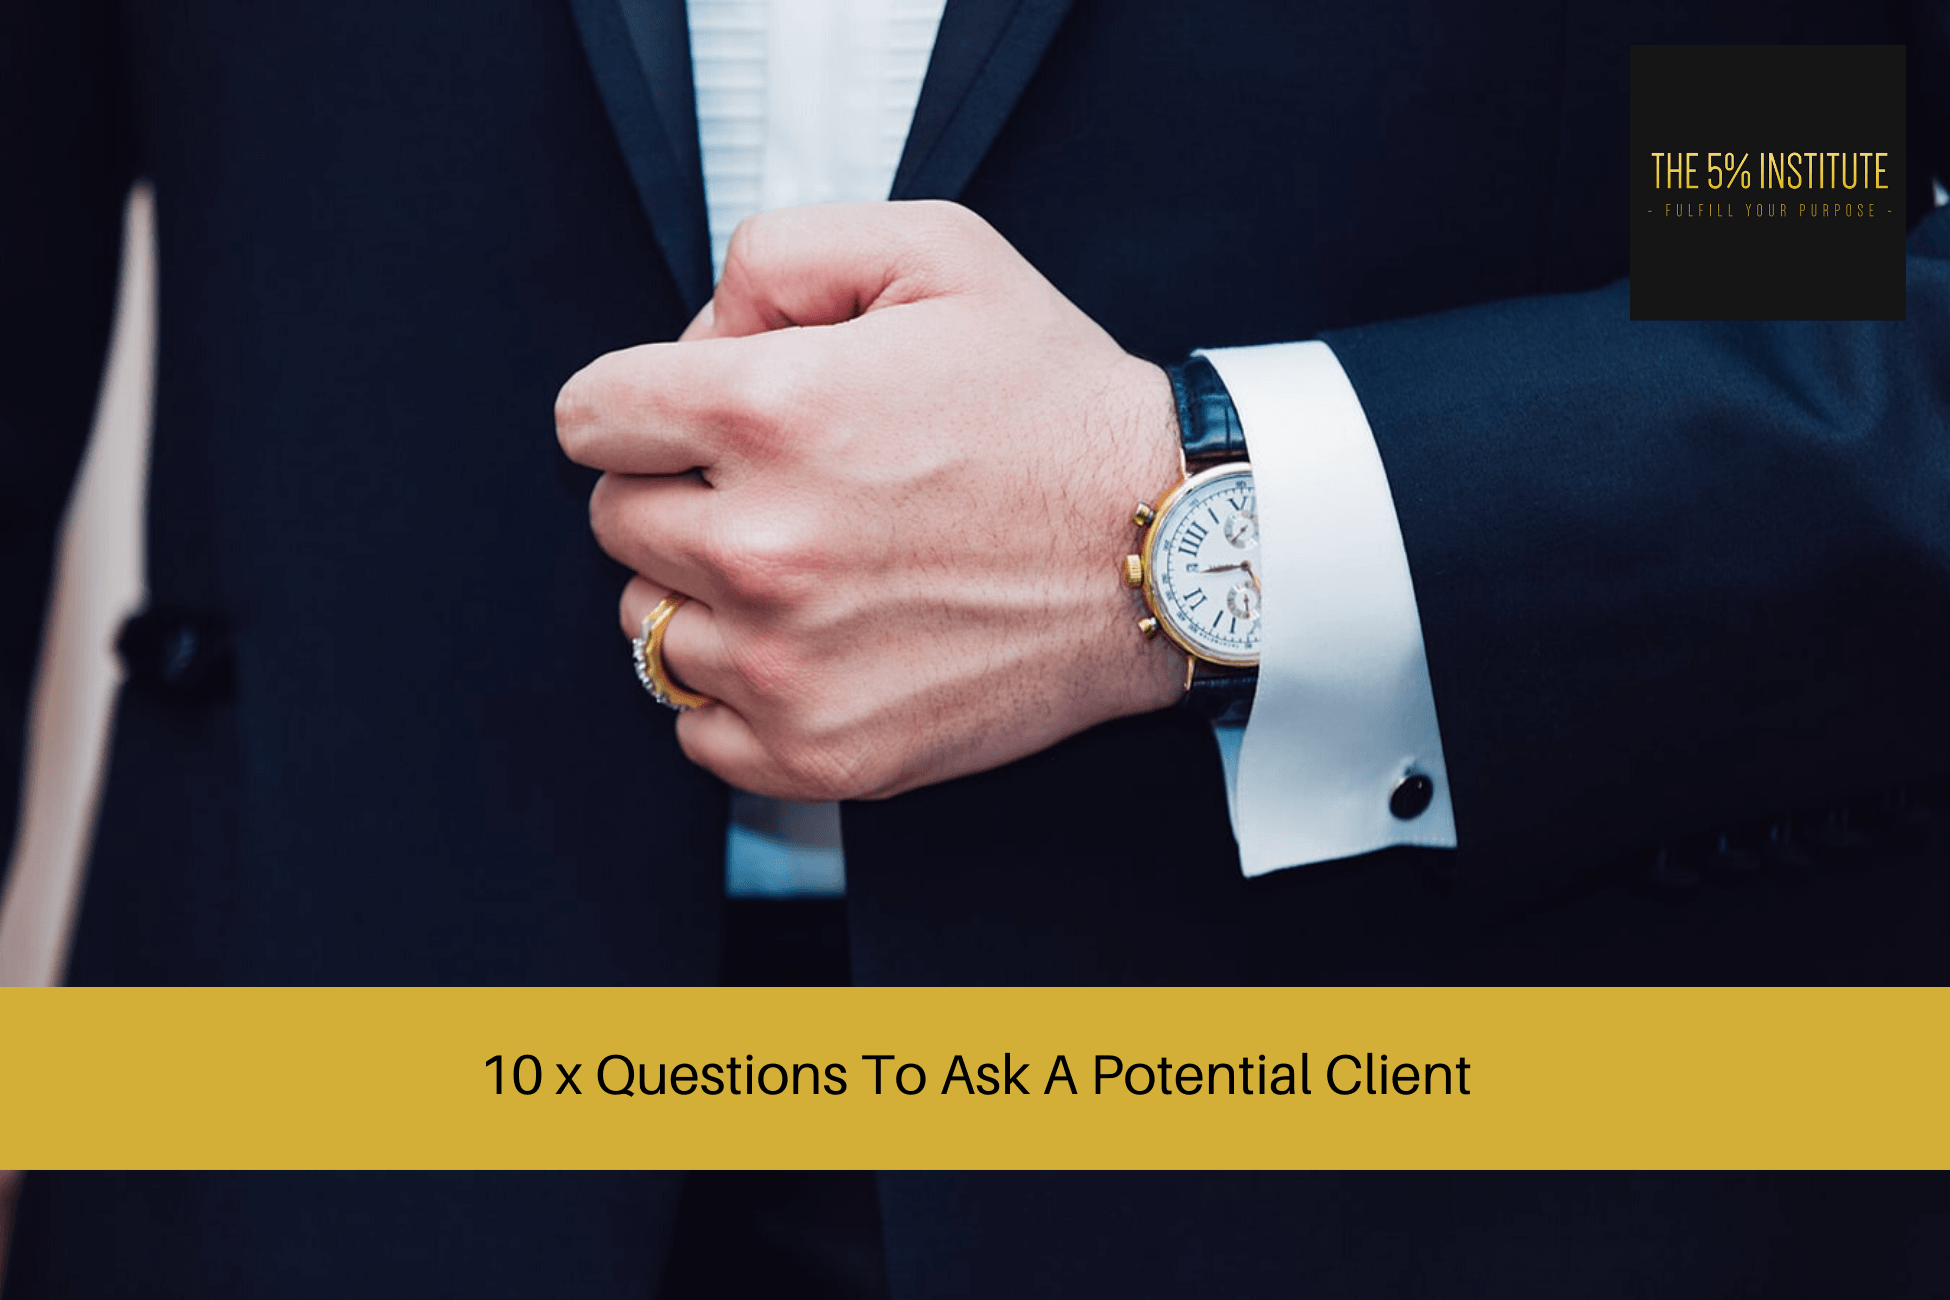 questions to ask a potential client